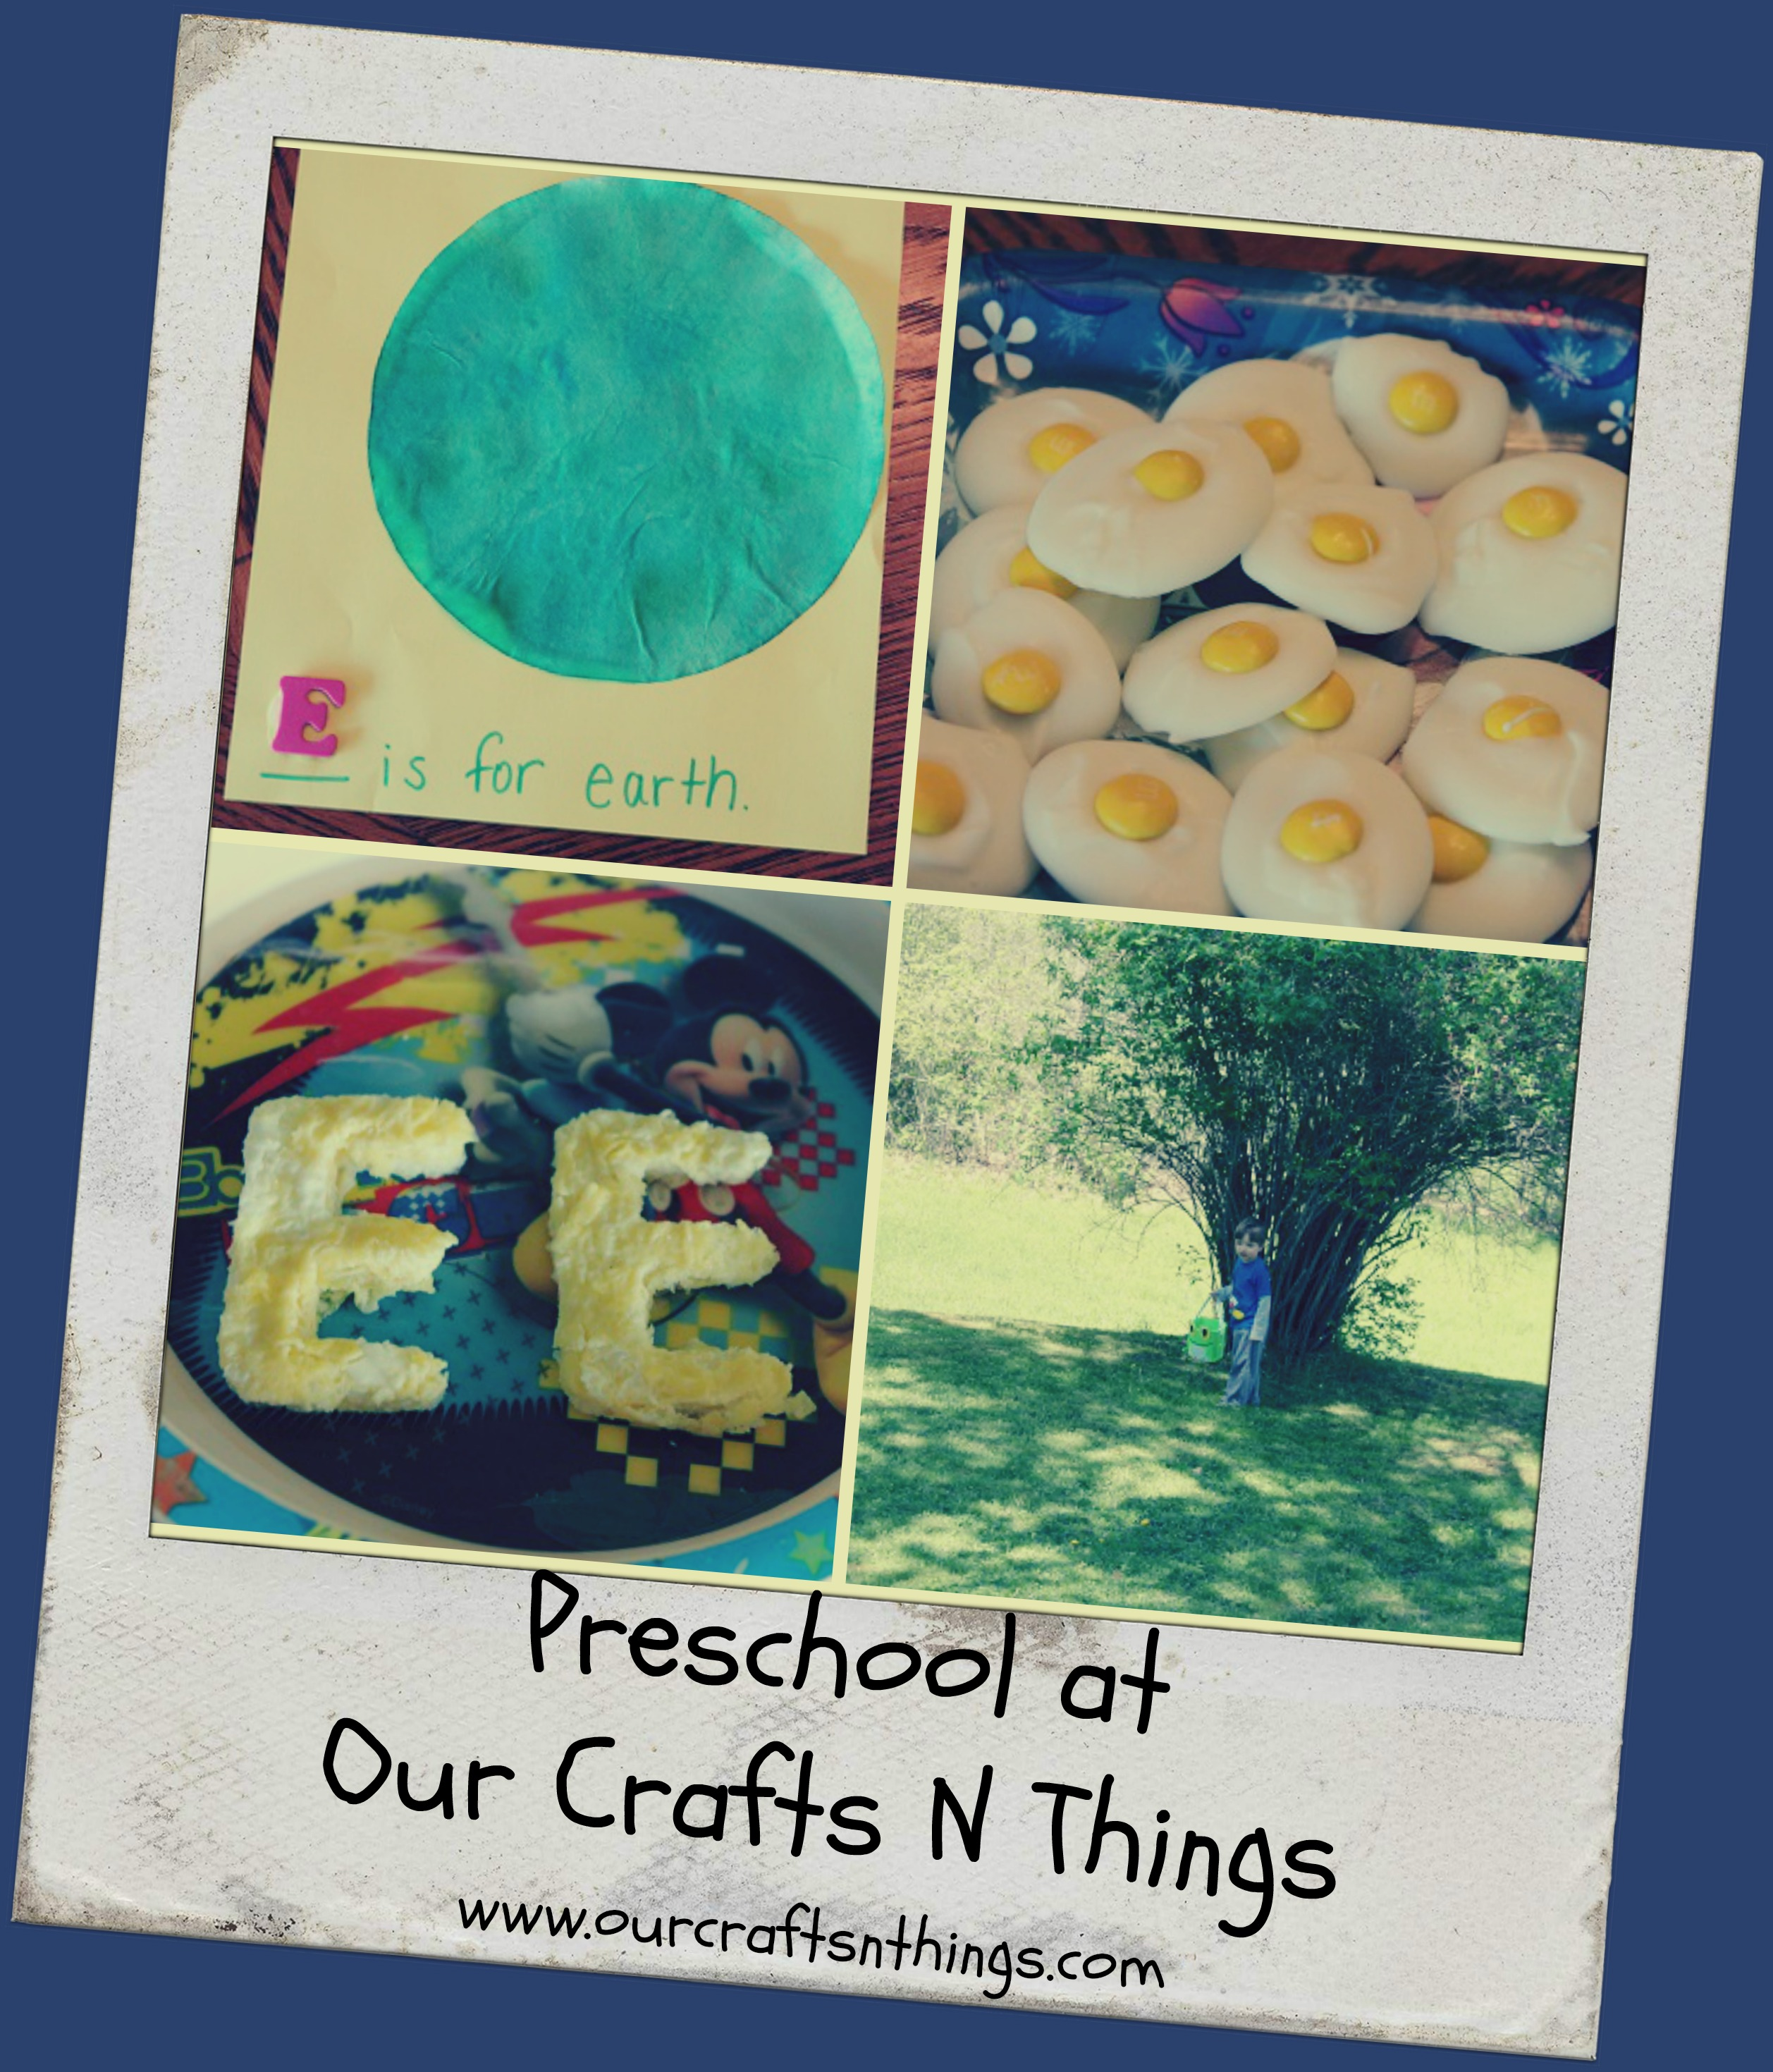 Our Crafts N Things Presidents Day